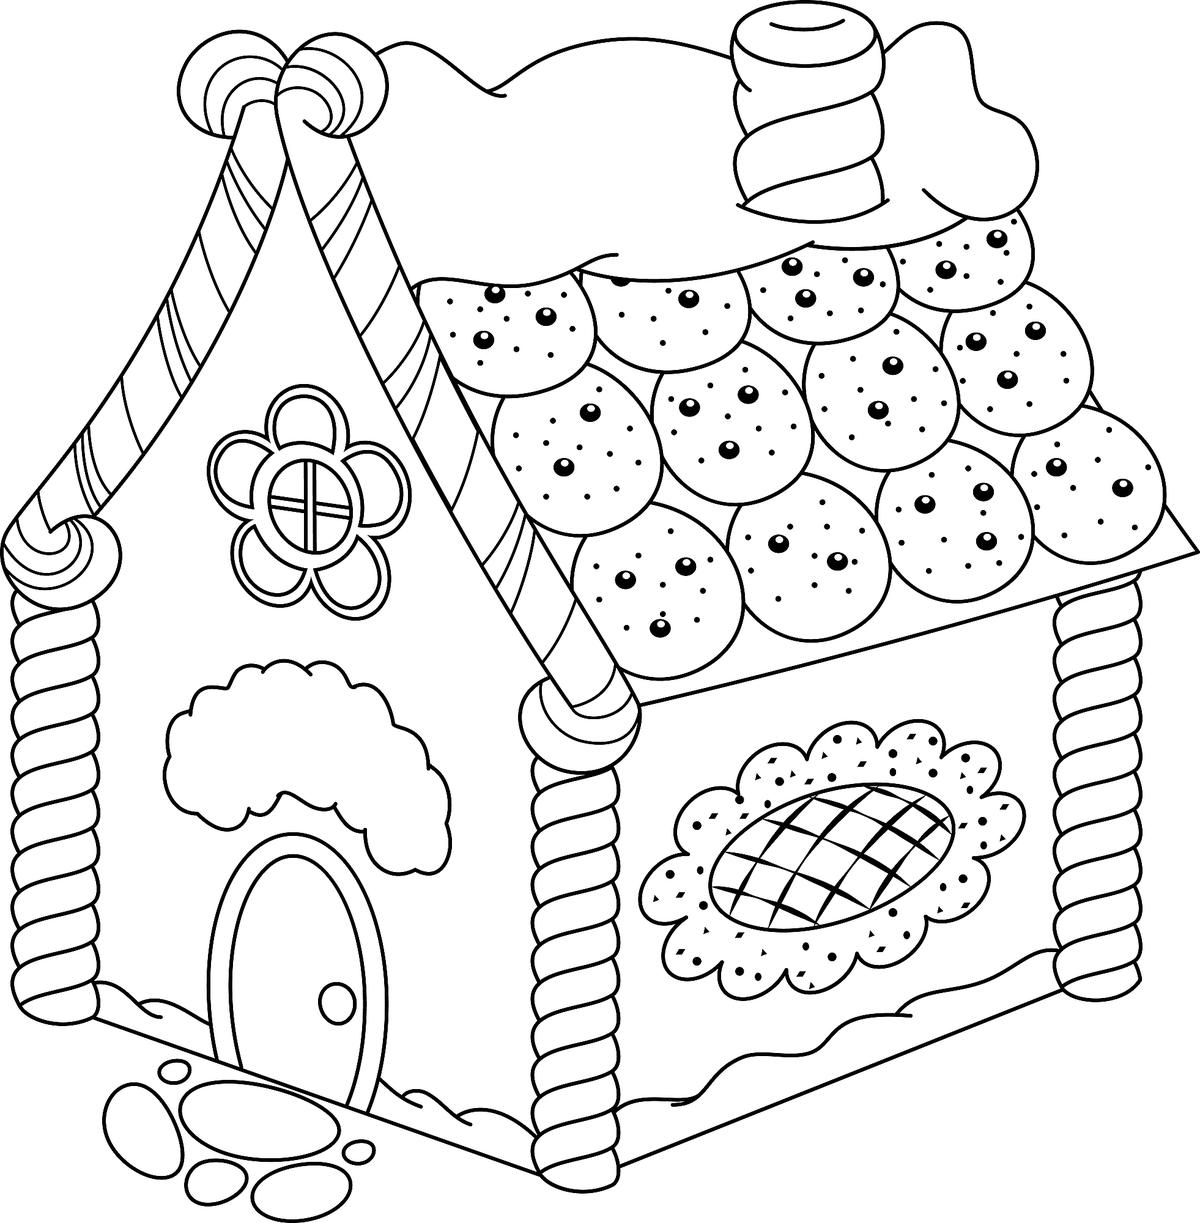 gingerbread house colouring pages gingerbread house coloring pages coloring pages to colouring pages gingerbread house